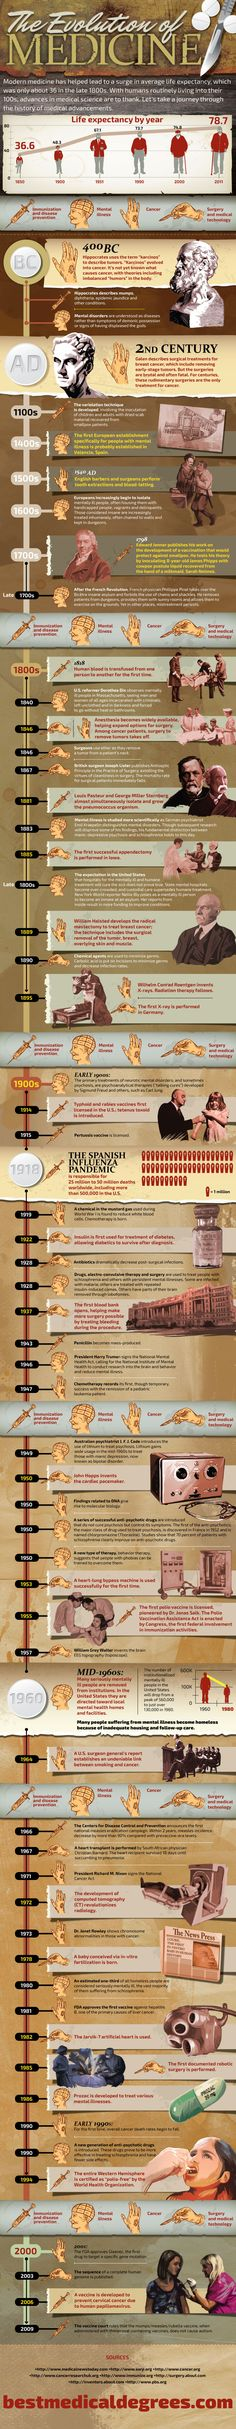 Infografía sobre la evolución de la medicina (The evolution of medicine)